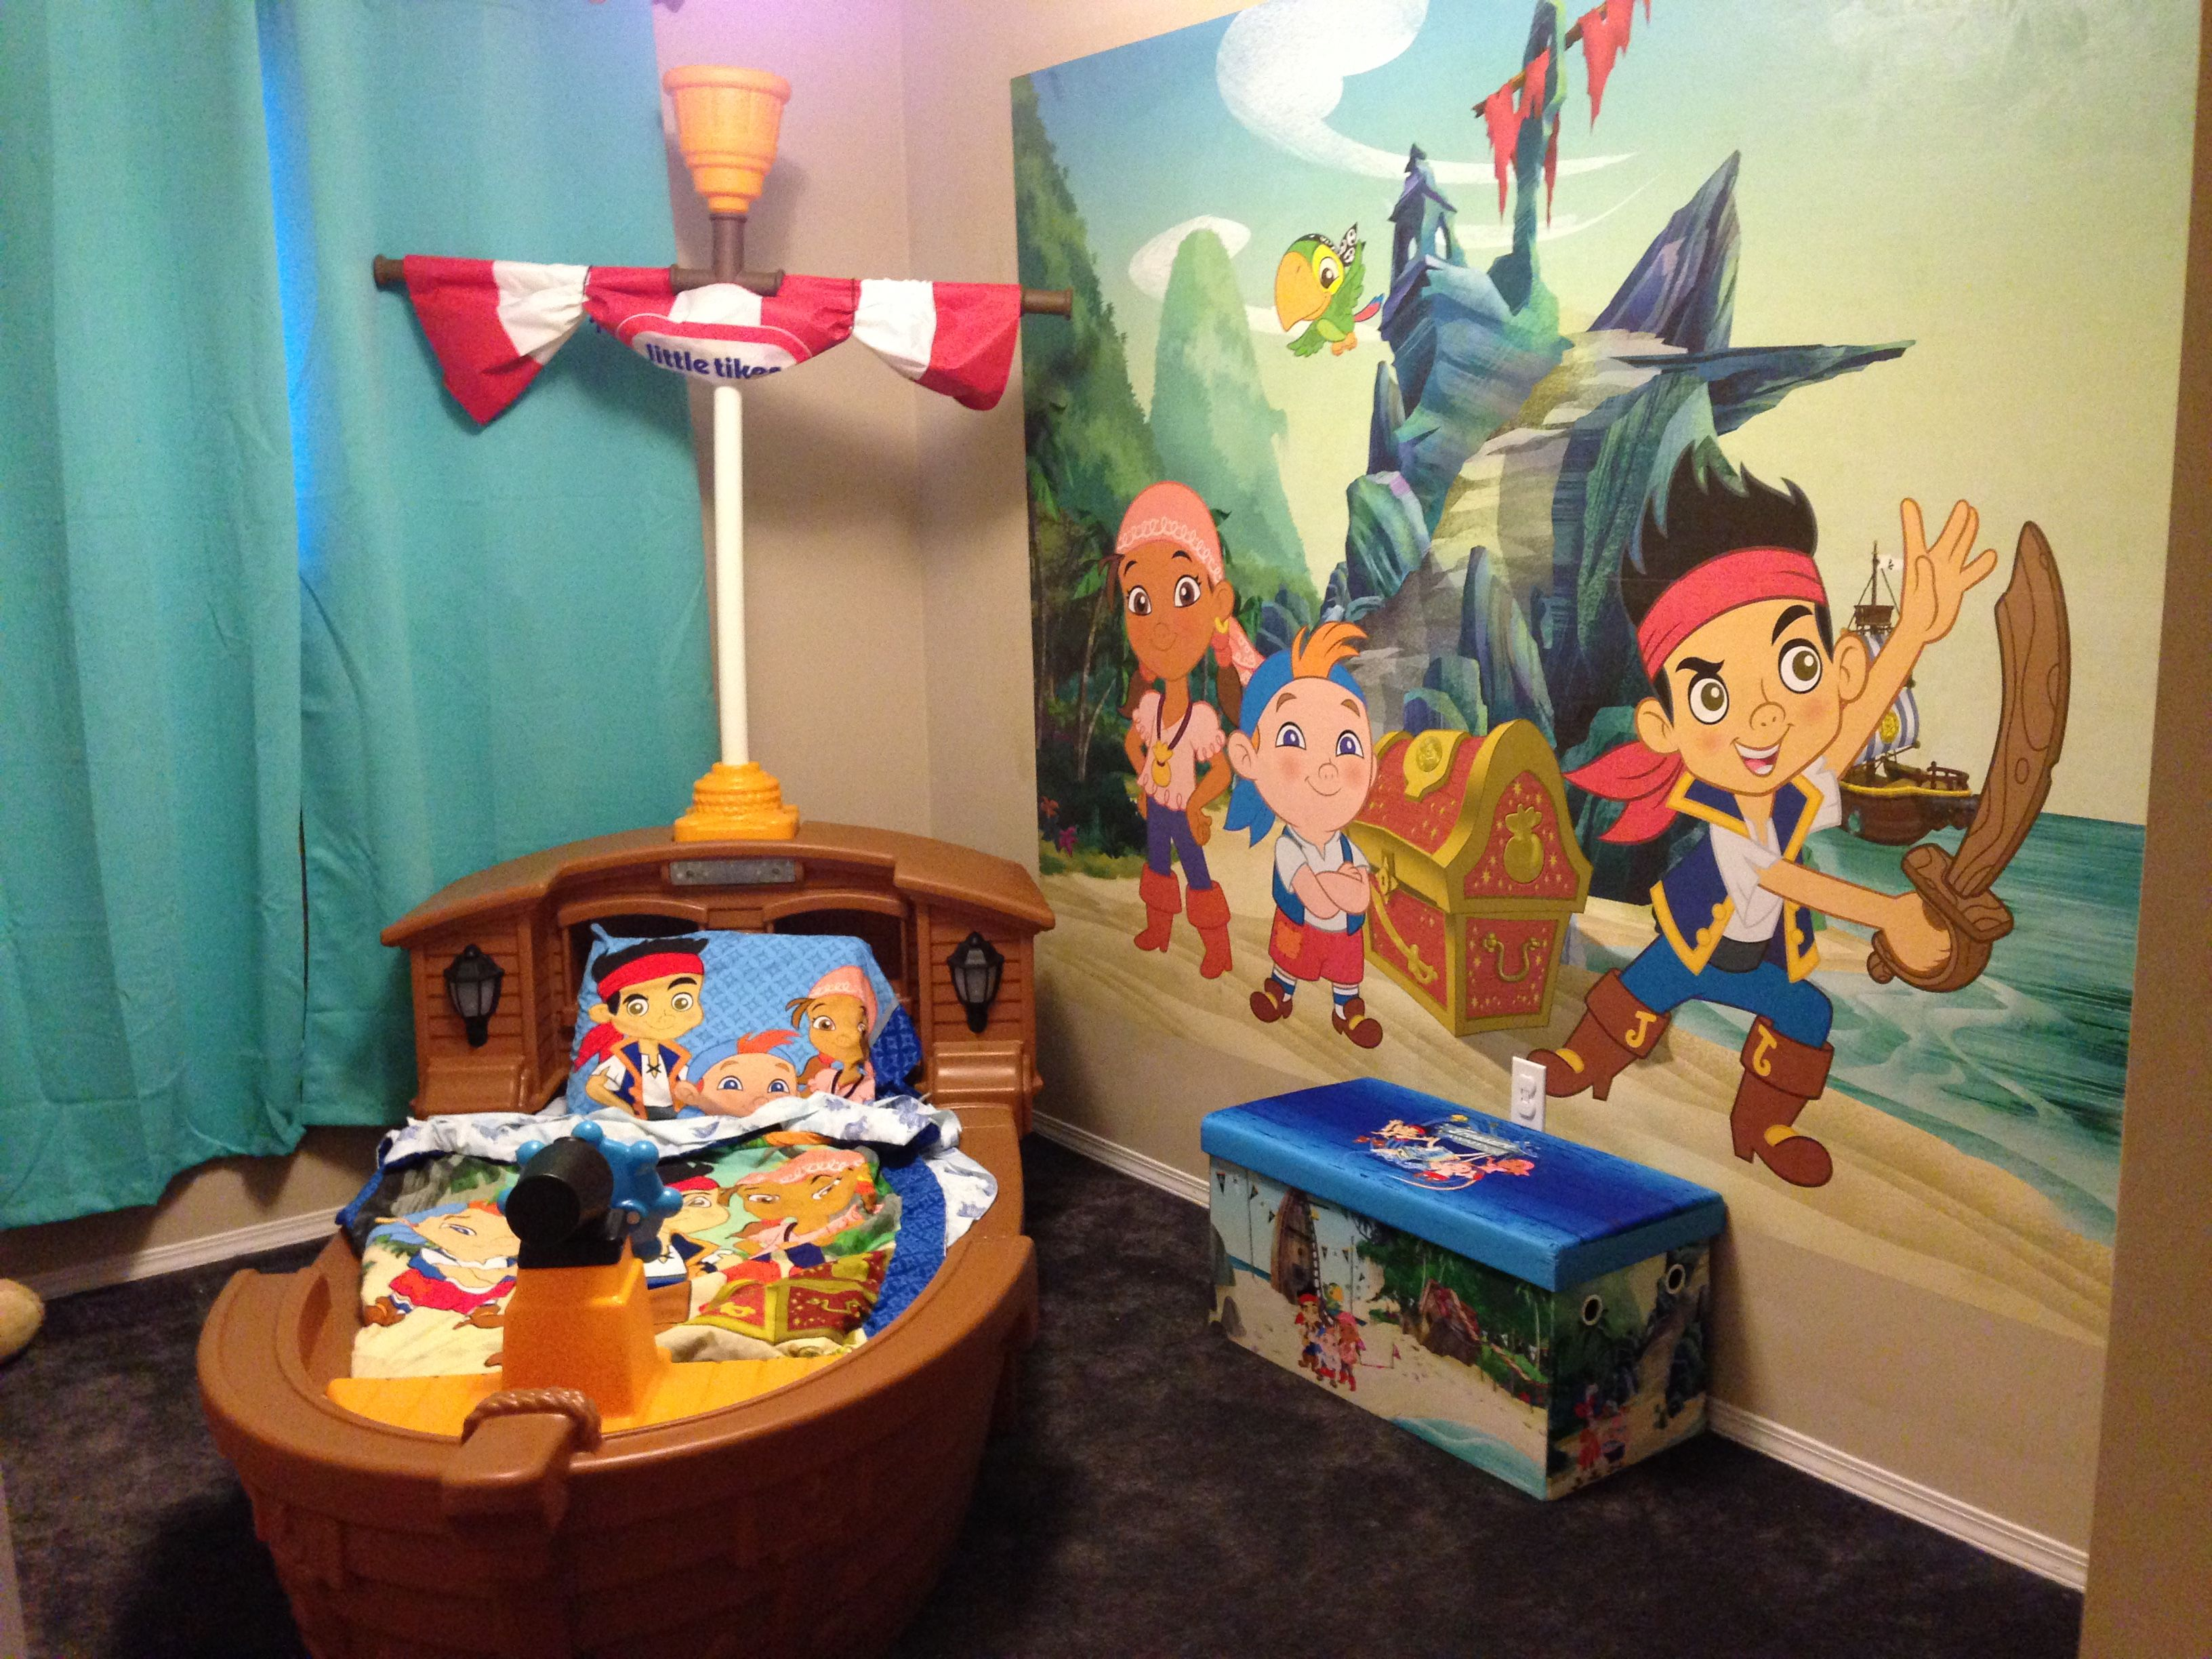 Wyatt's Jake And The Neverland Pirates Bedroom